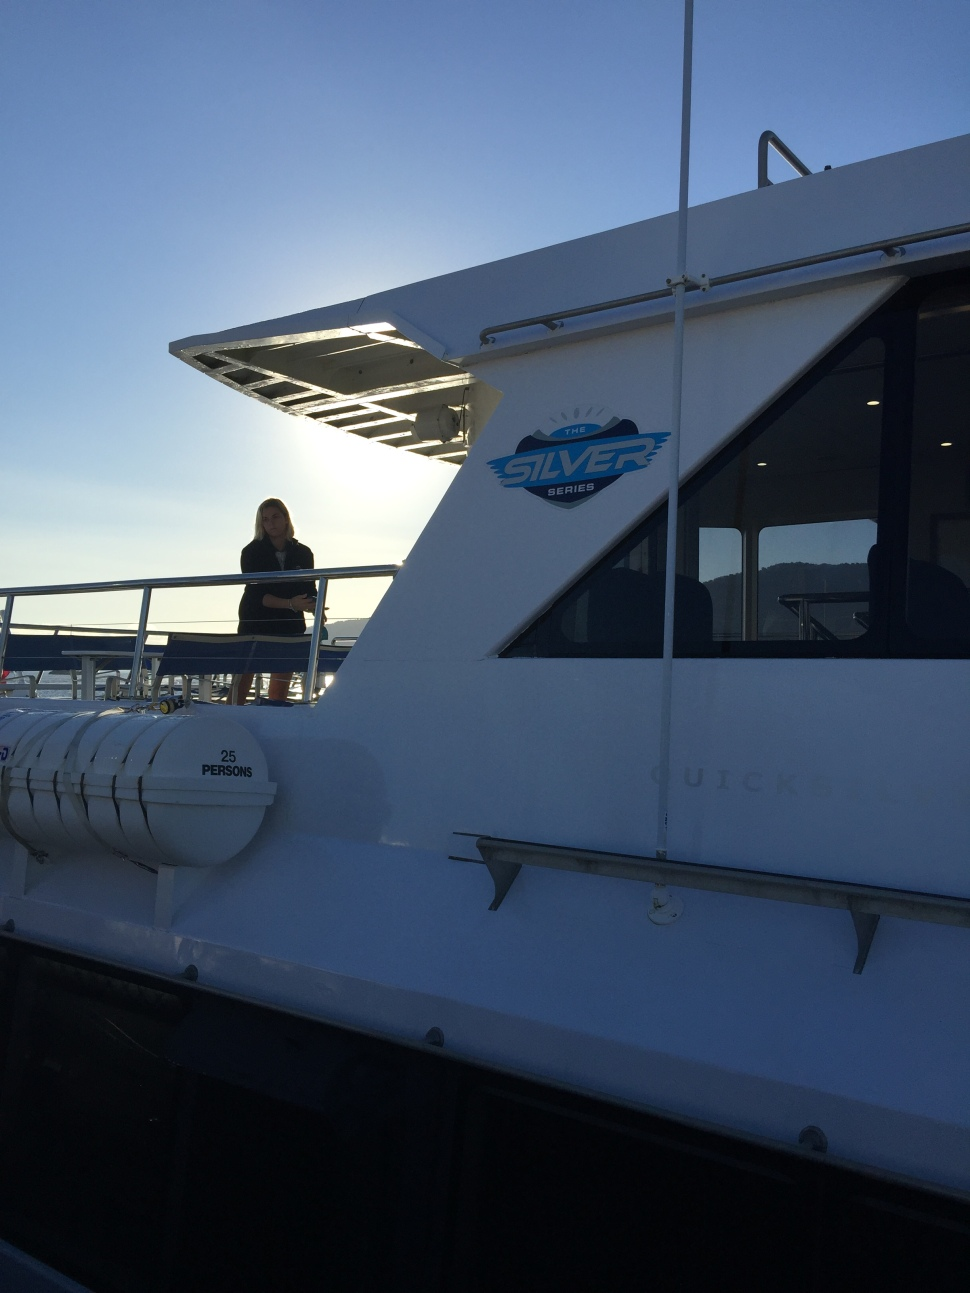 Boarding the Silverswift for the direct service to Flynn Reef on the GBR.